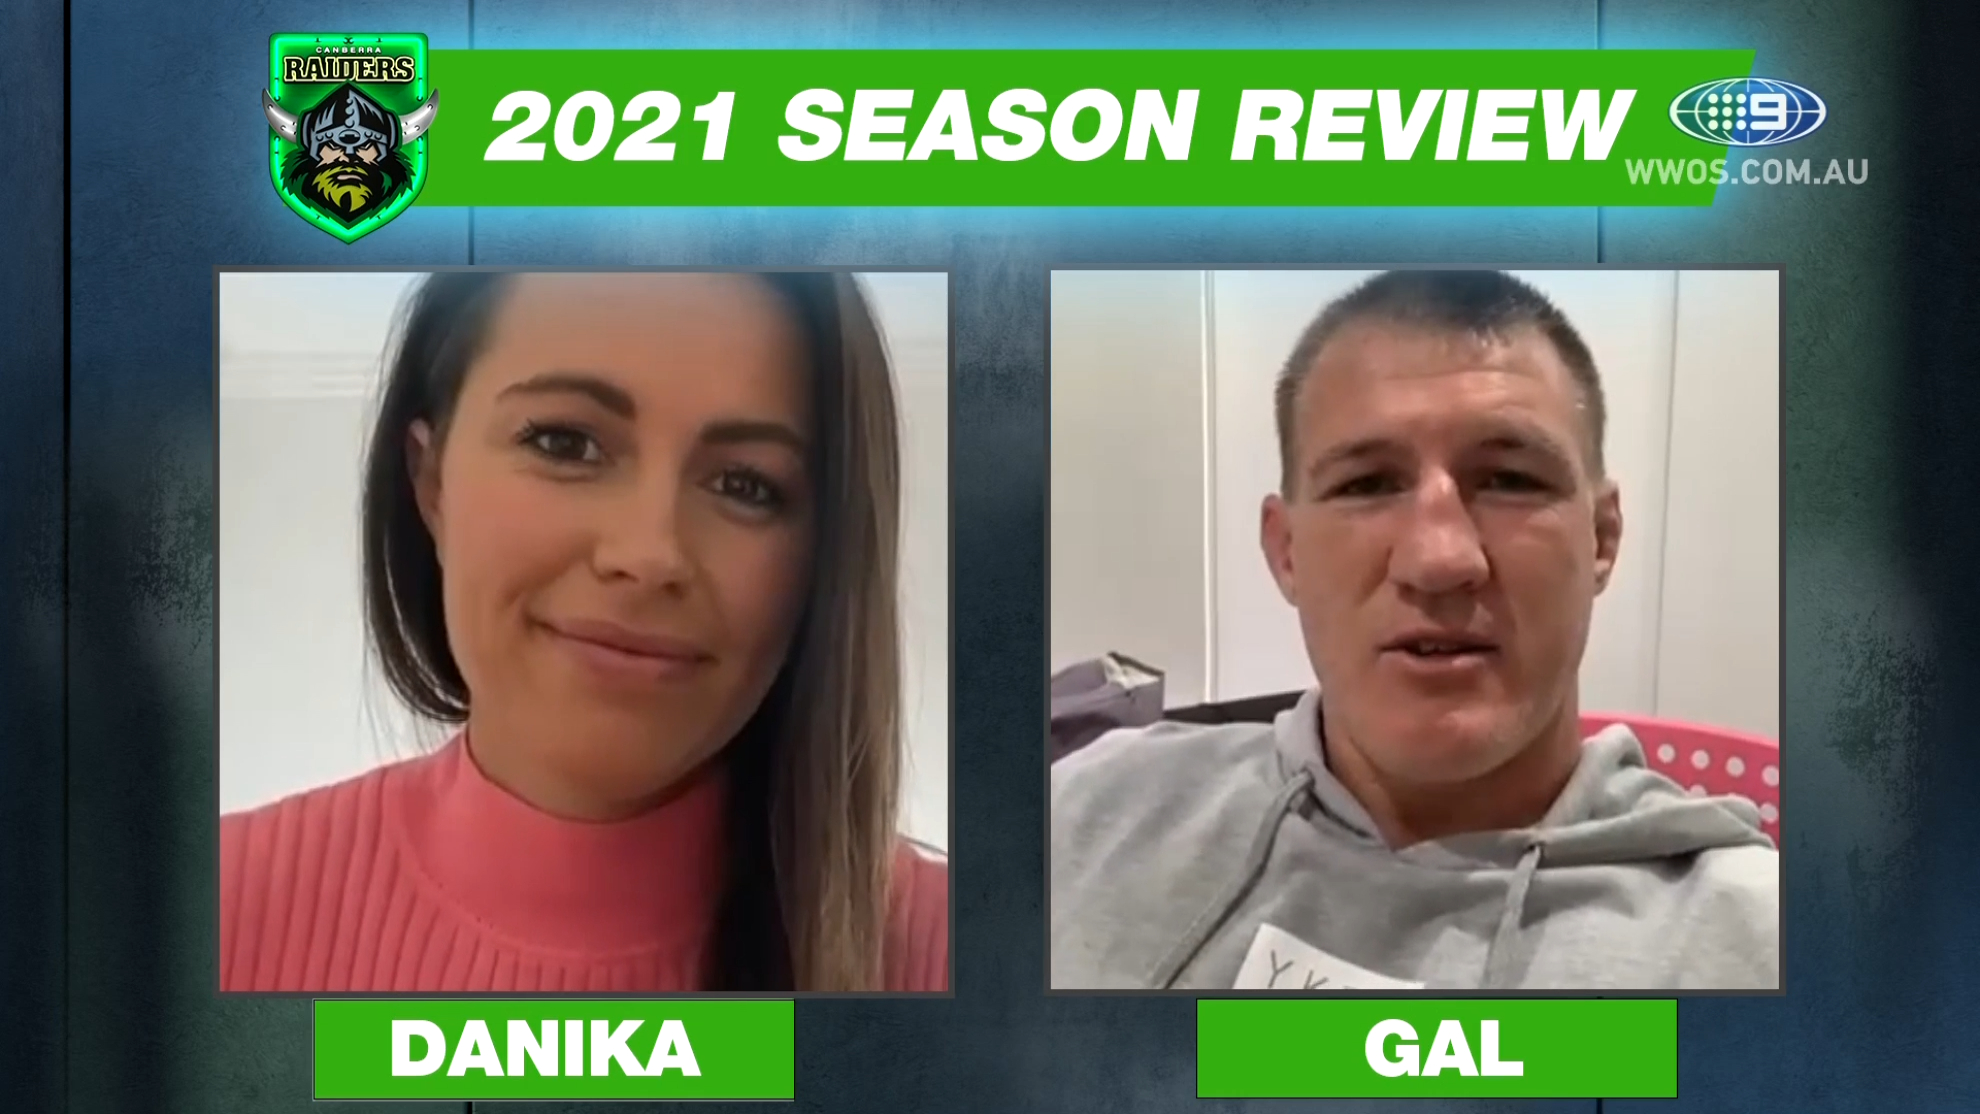 2021 Team Reviews: The Raiders under-deliver in 2021